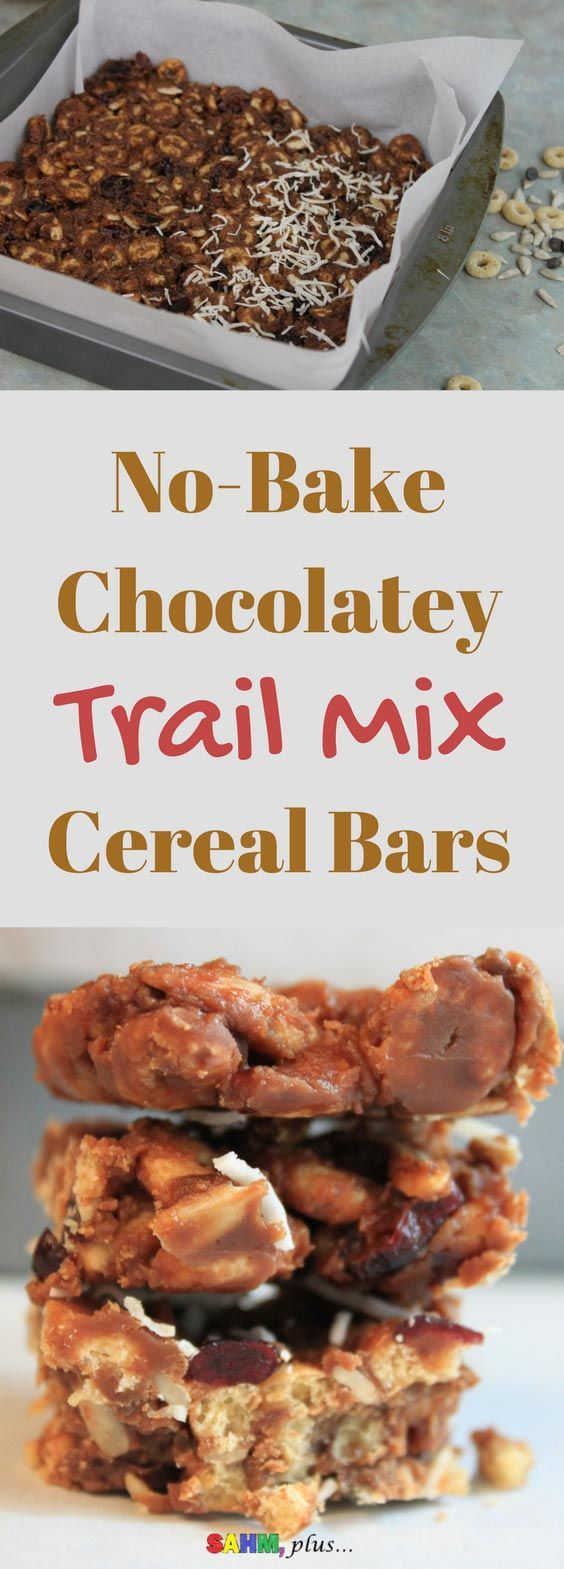 No bake chocolatey trail mix cereal bars. Made with gluten free O's cereal. And, no honey, so it's perfect for your toddler to enjoy. Gluten free dairy free trail mix cereal bars are a perfect after school treat. via www.sahmplus.com